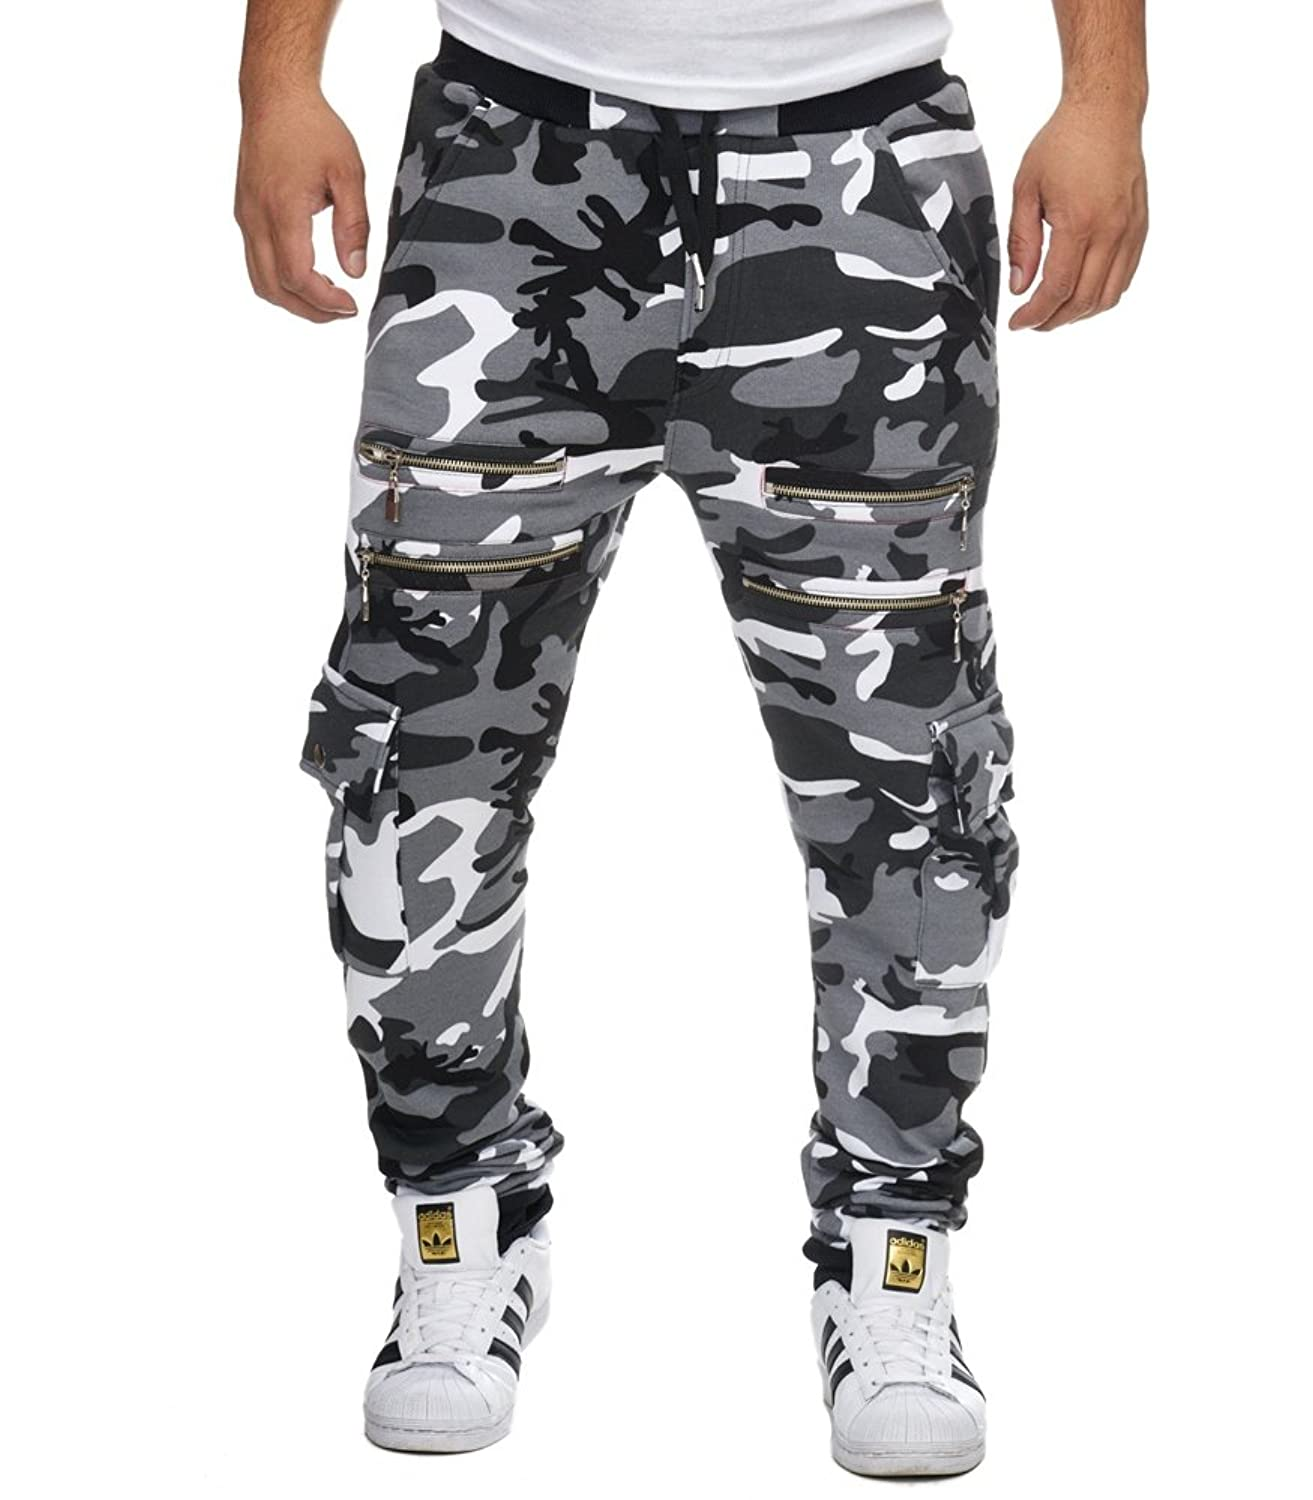 Sarouel Homme Camouflage